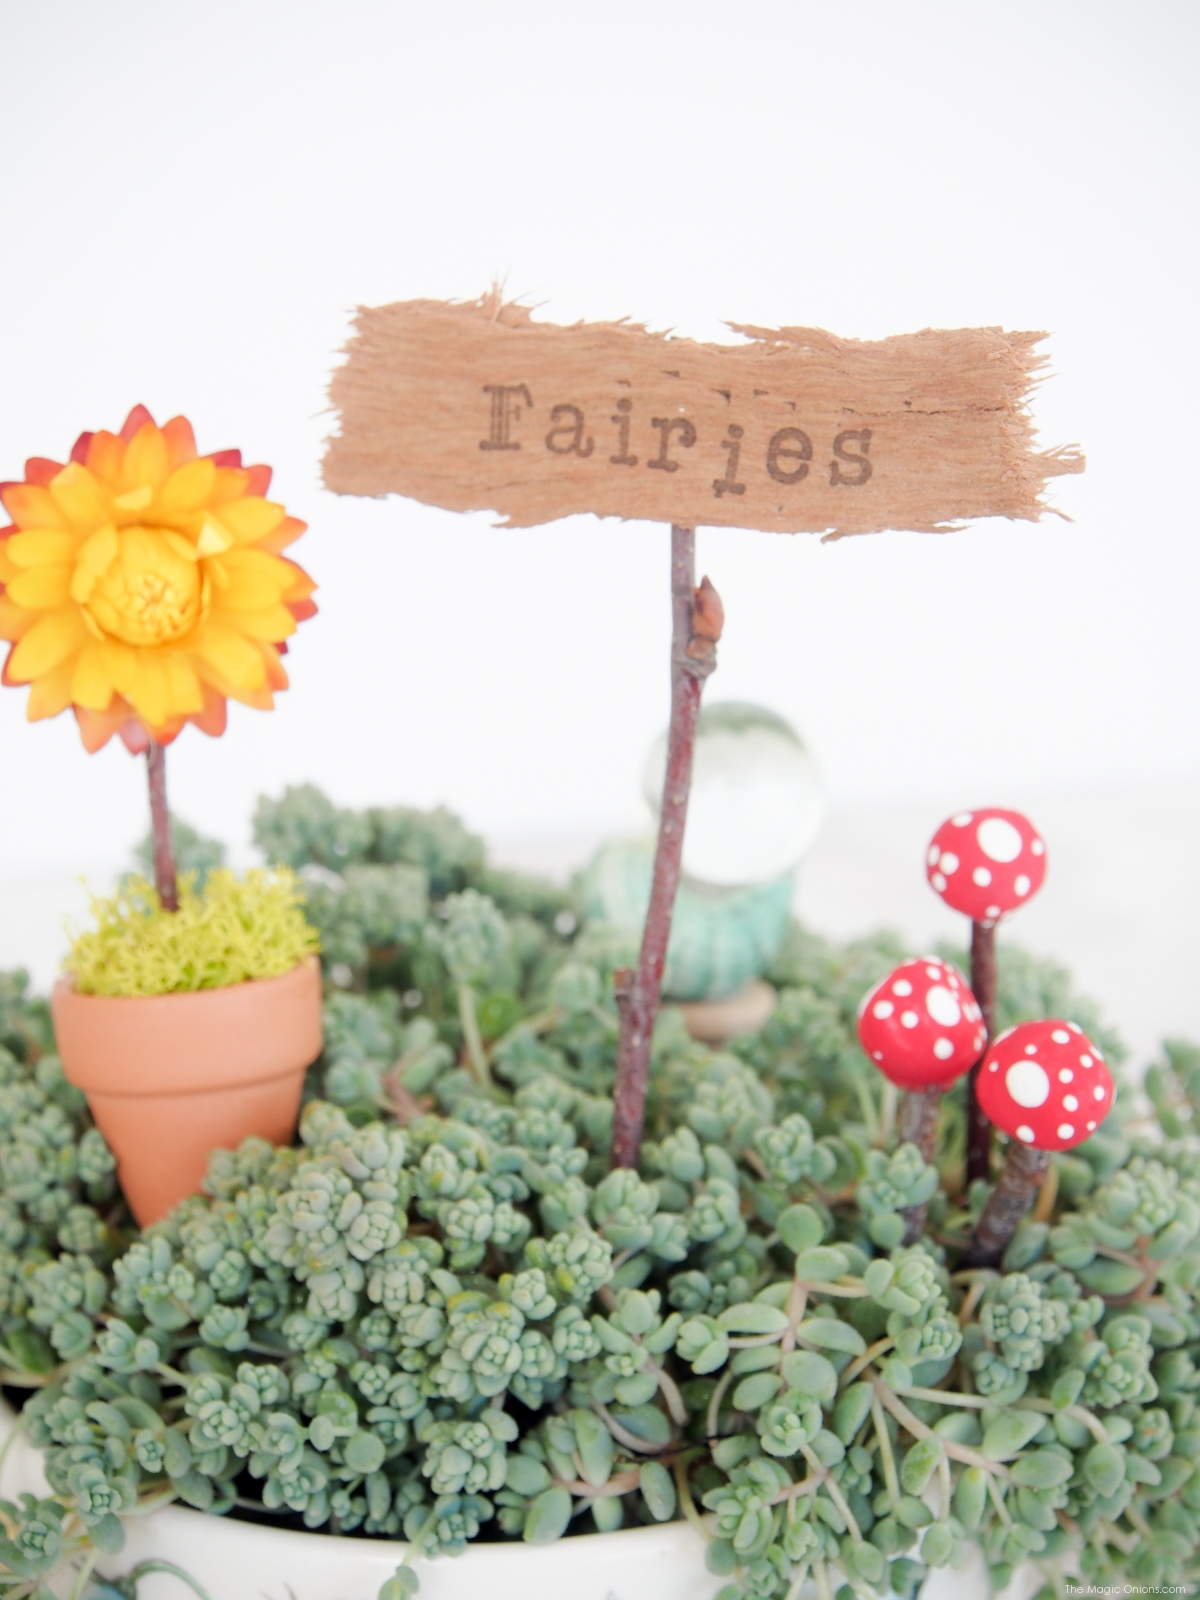 DIY Mini Toadstools for your Fairy Garden - The Magic Onions